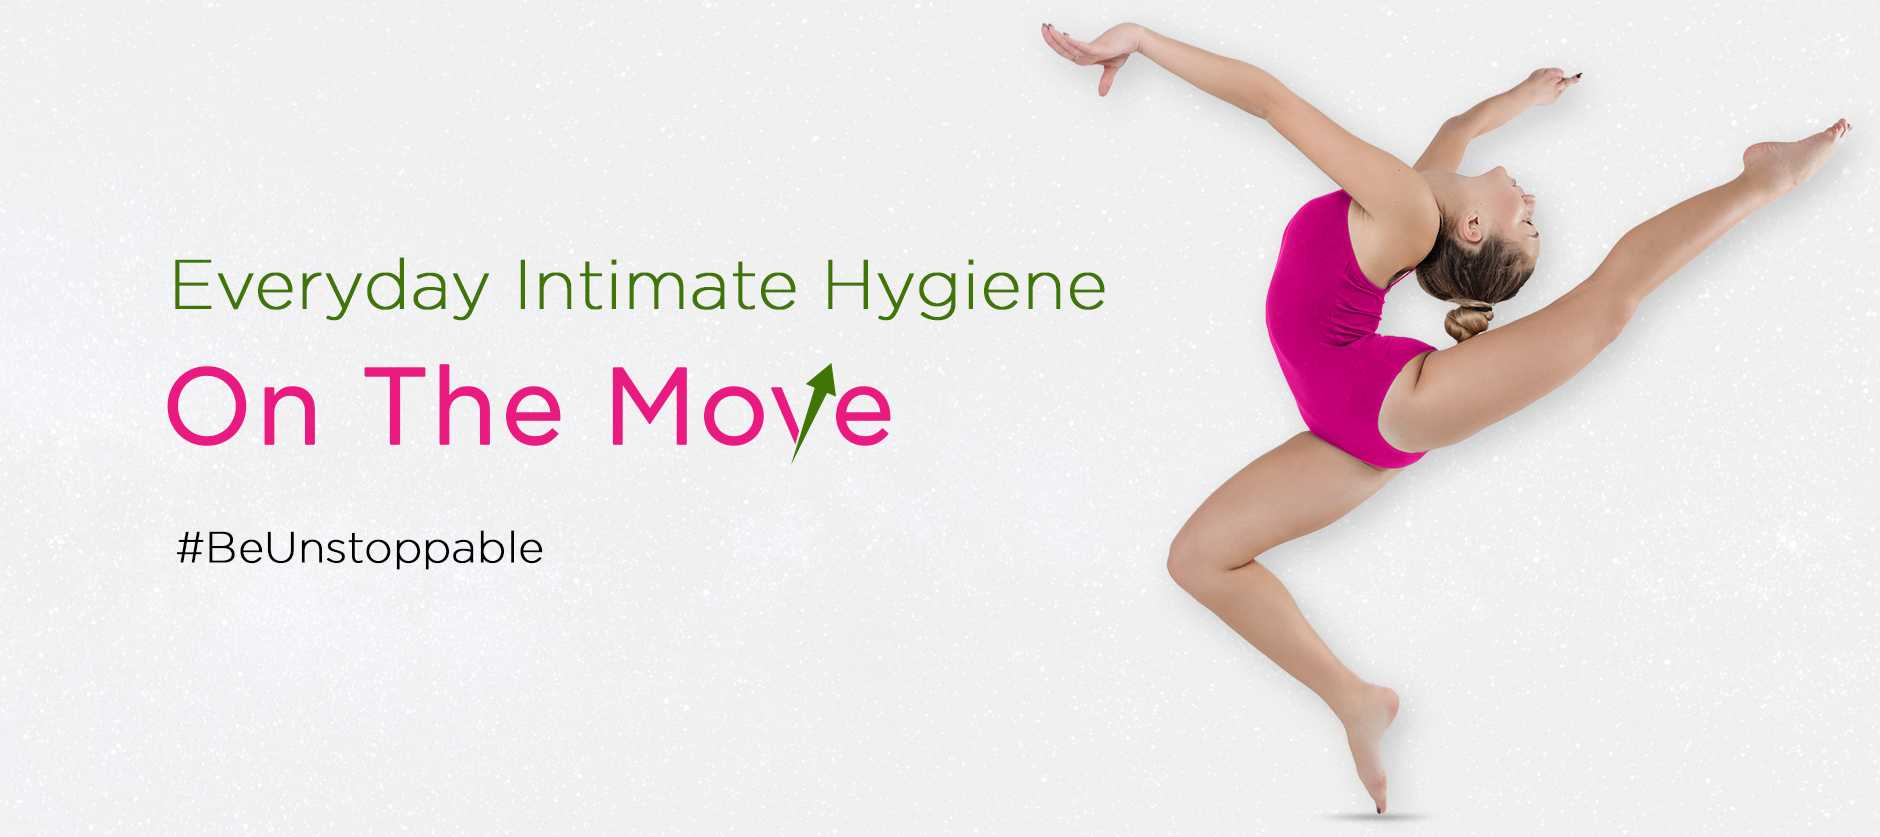 everteen offers everyday intimate hygiene on the move